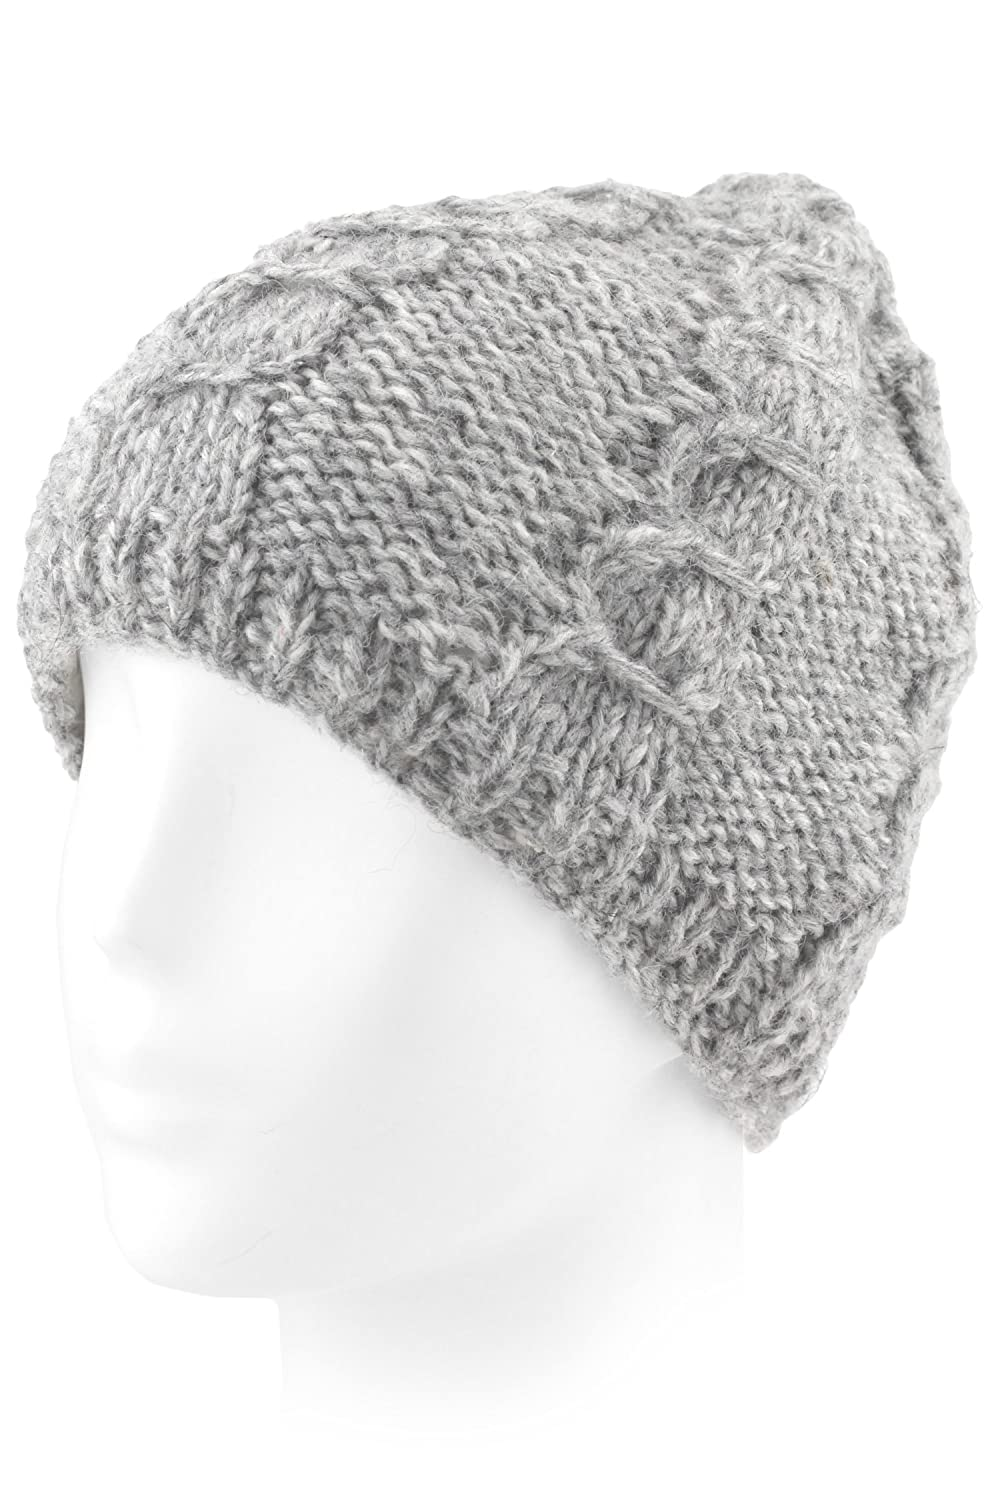 Evolatree Knit Wool Beanie Toque With Fleece Lining - Light Gray at Amazon  Men s Clothing store  a4857f71d0d